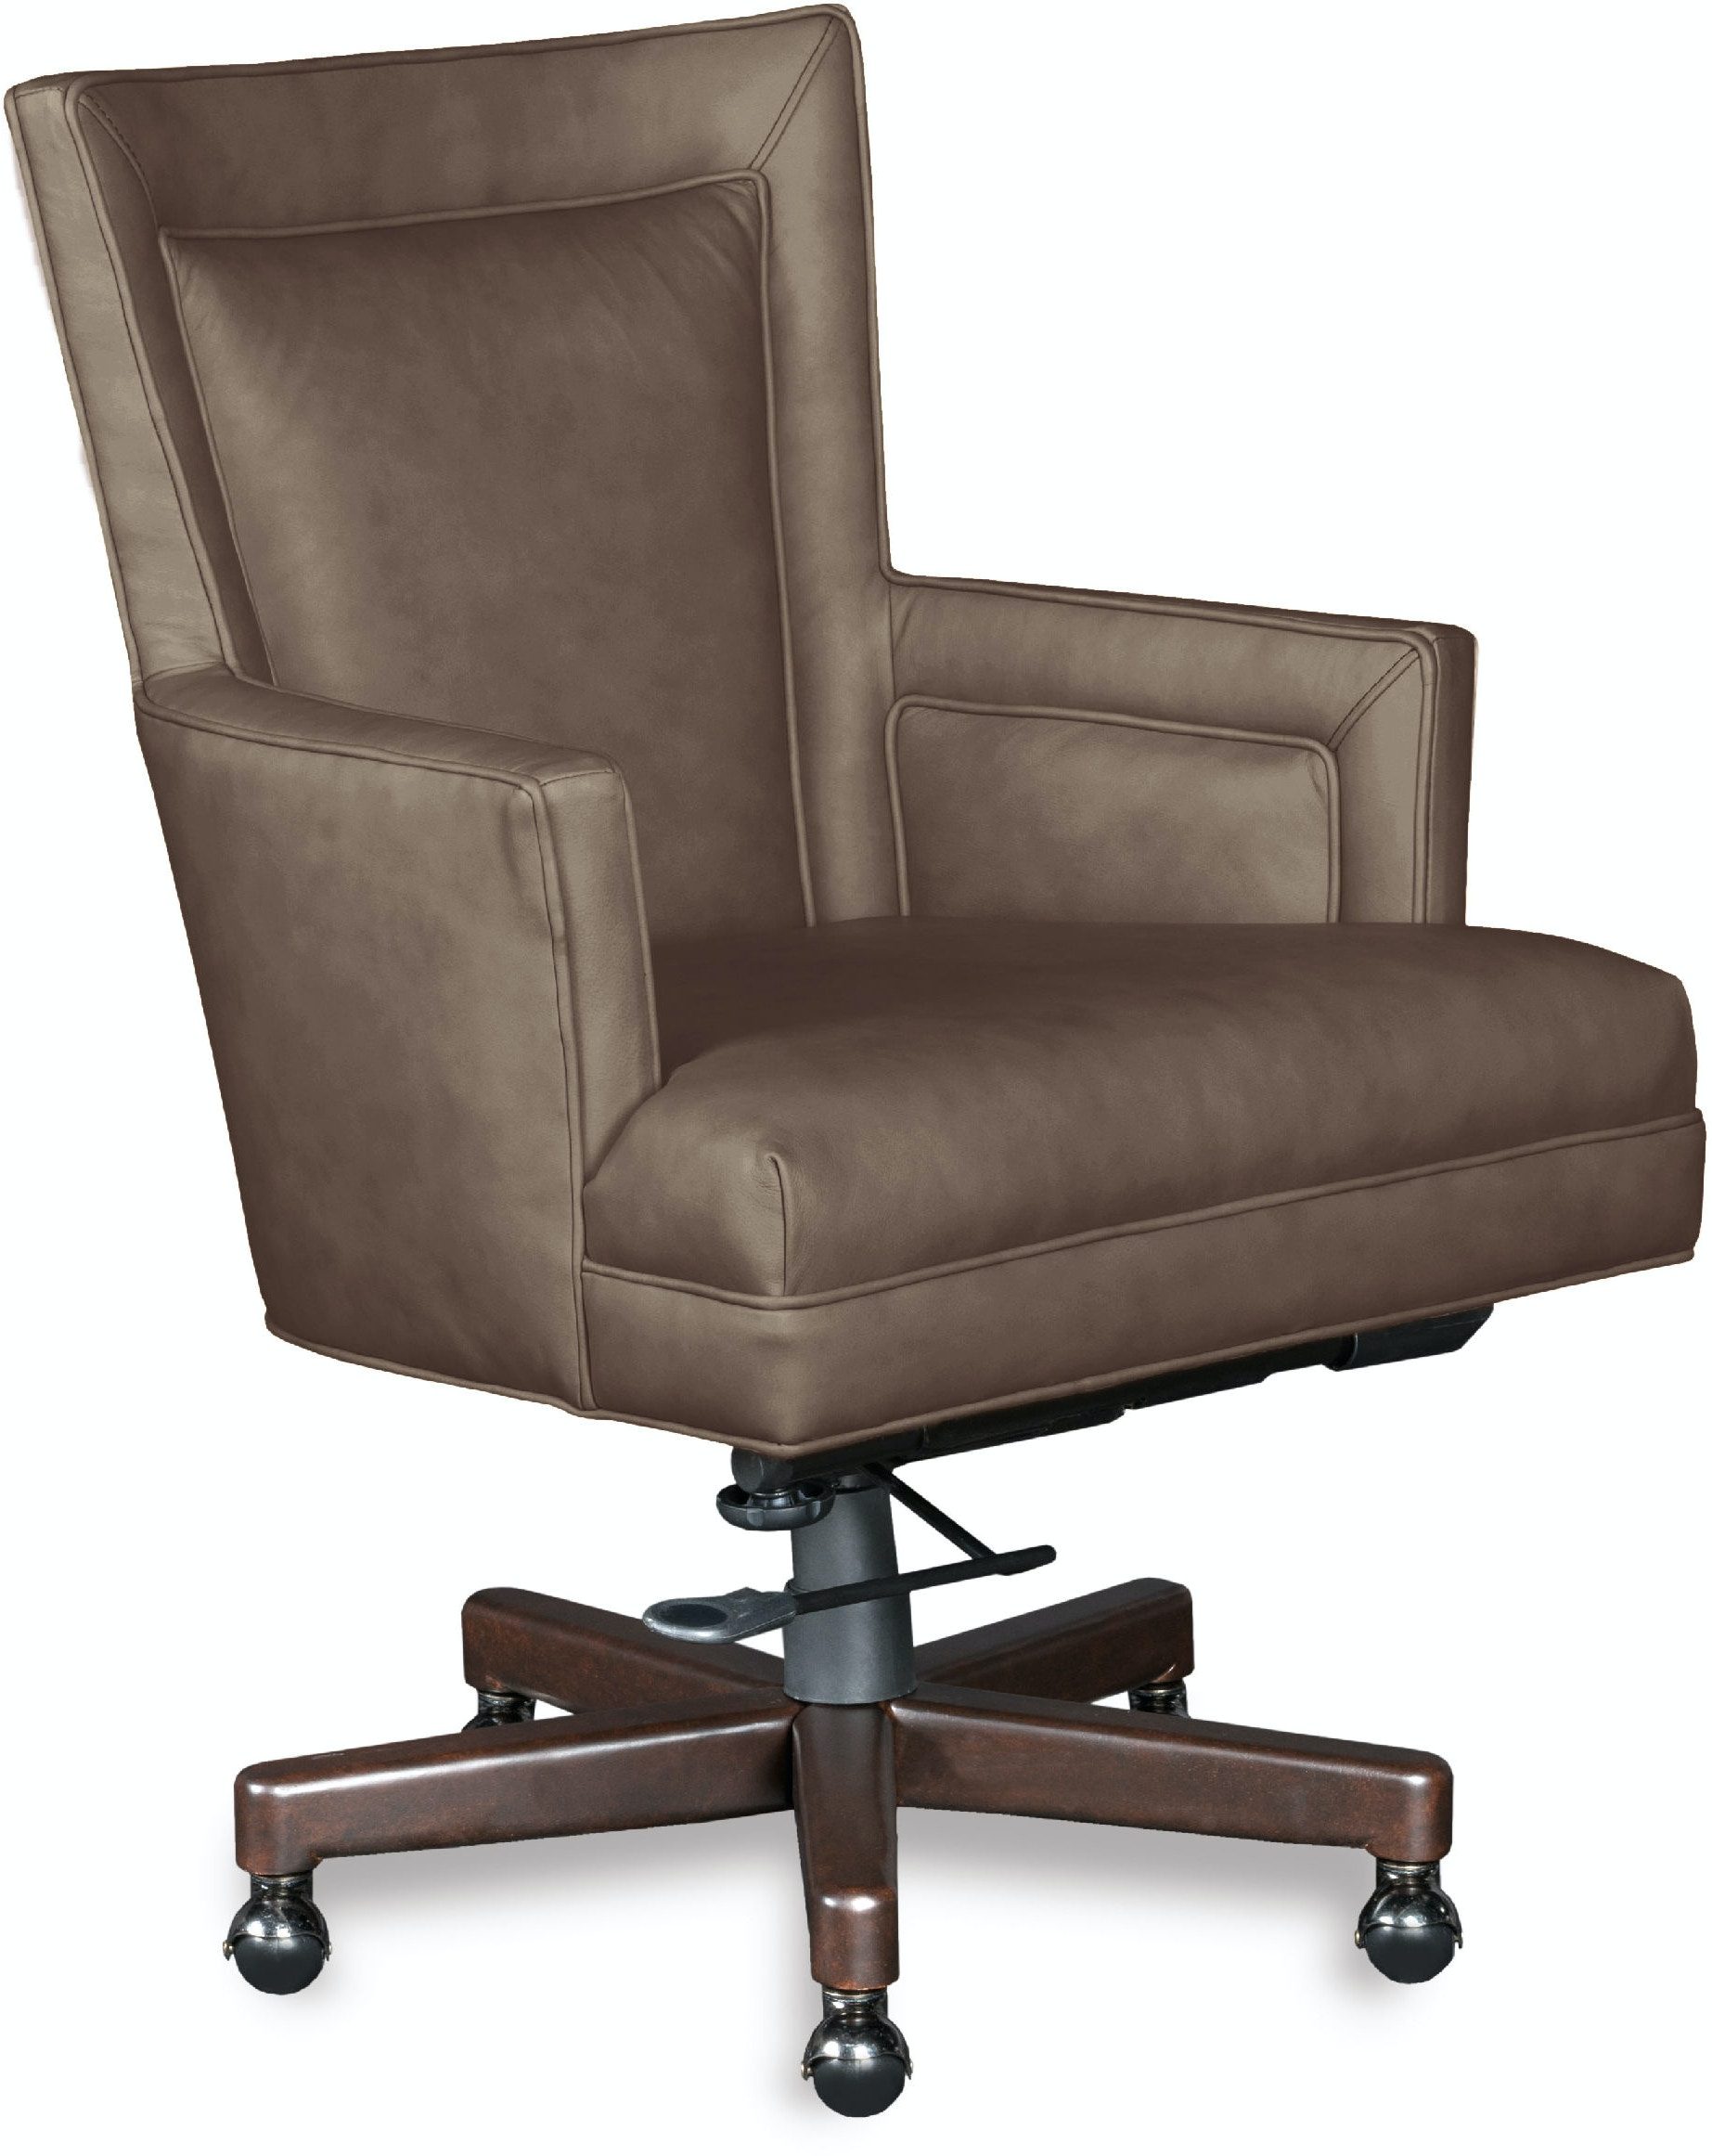 Hooker Furniture Rosa Home fice Chair EC447 084